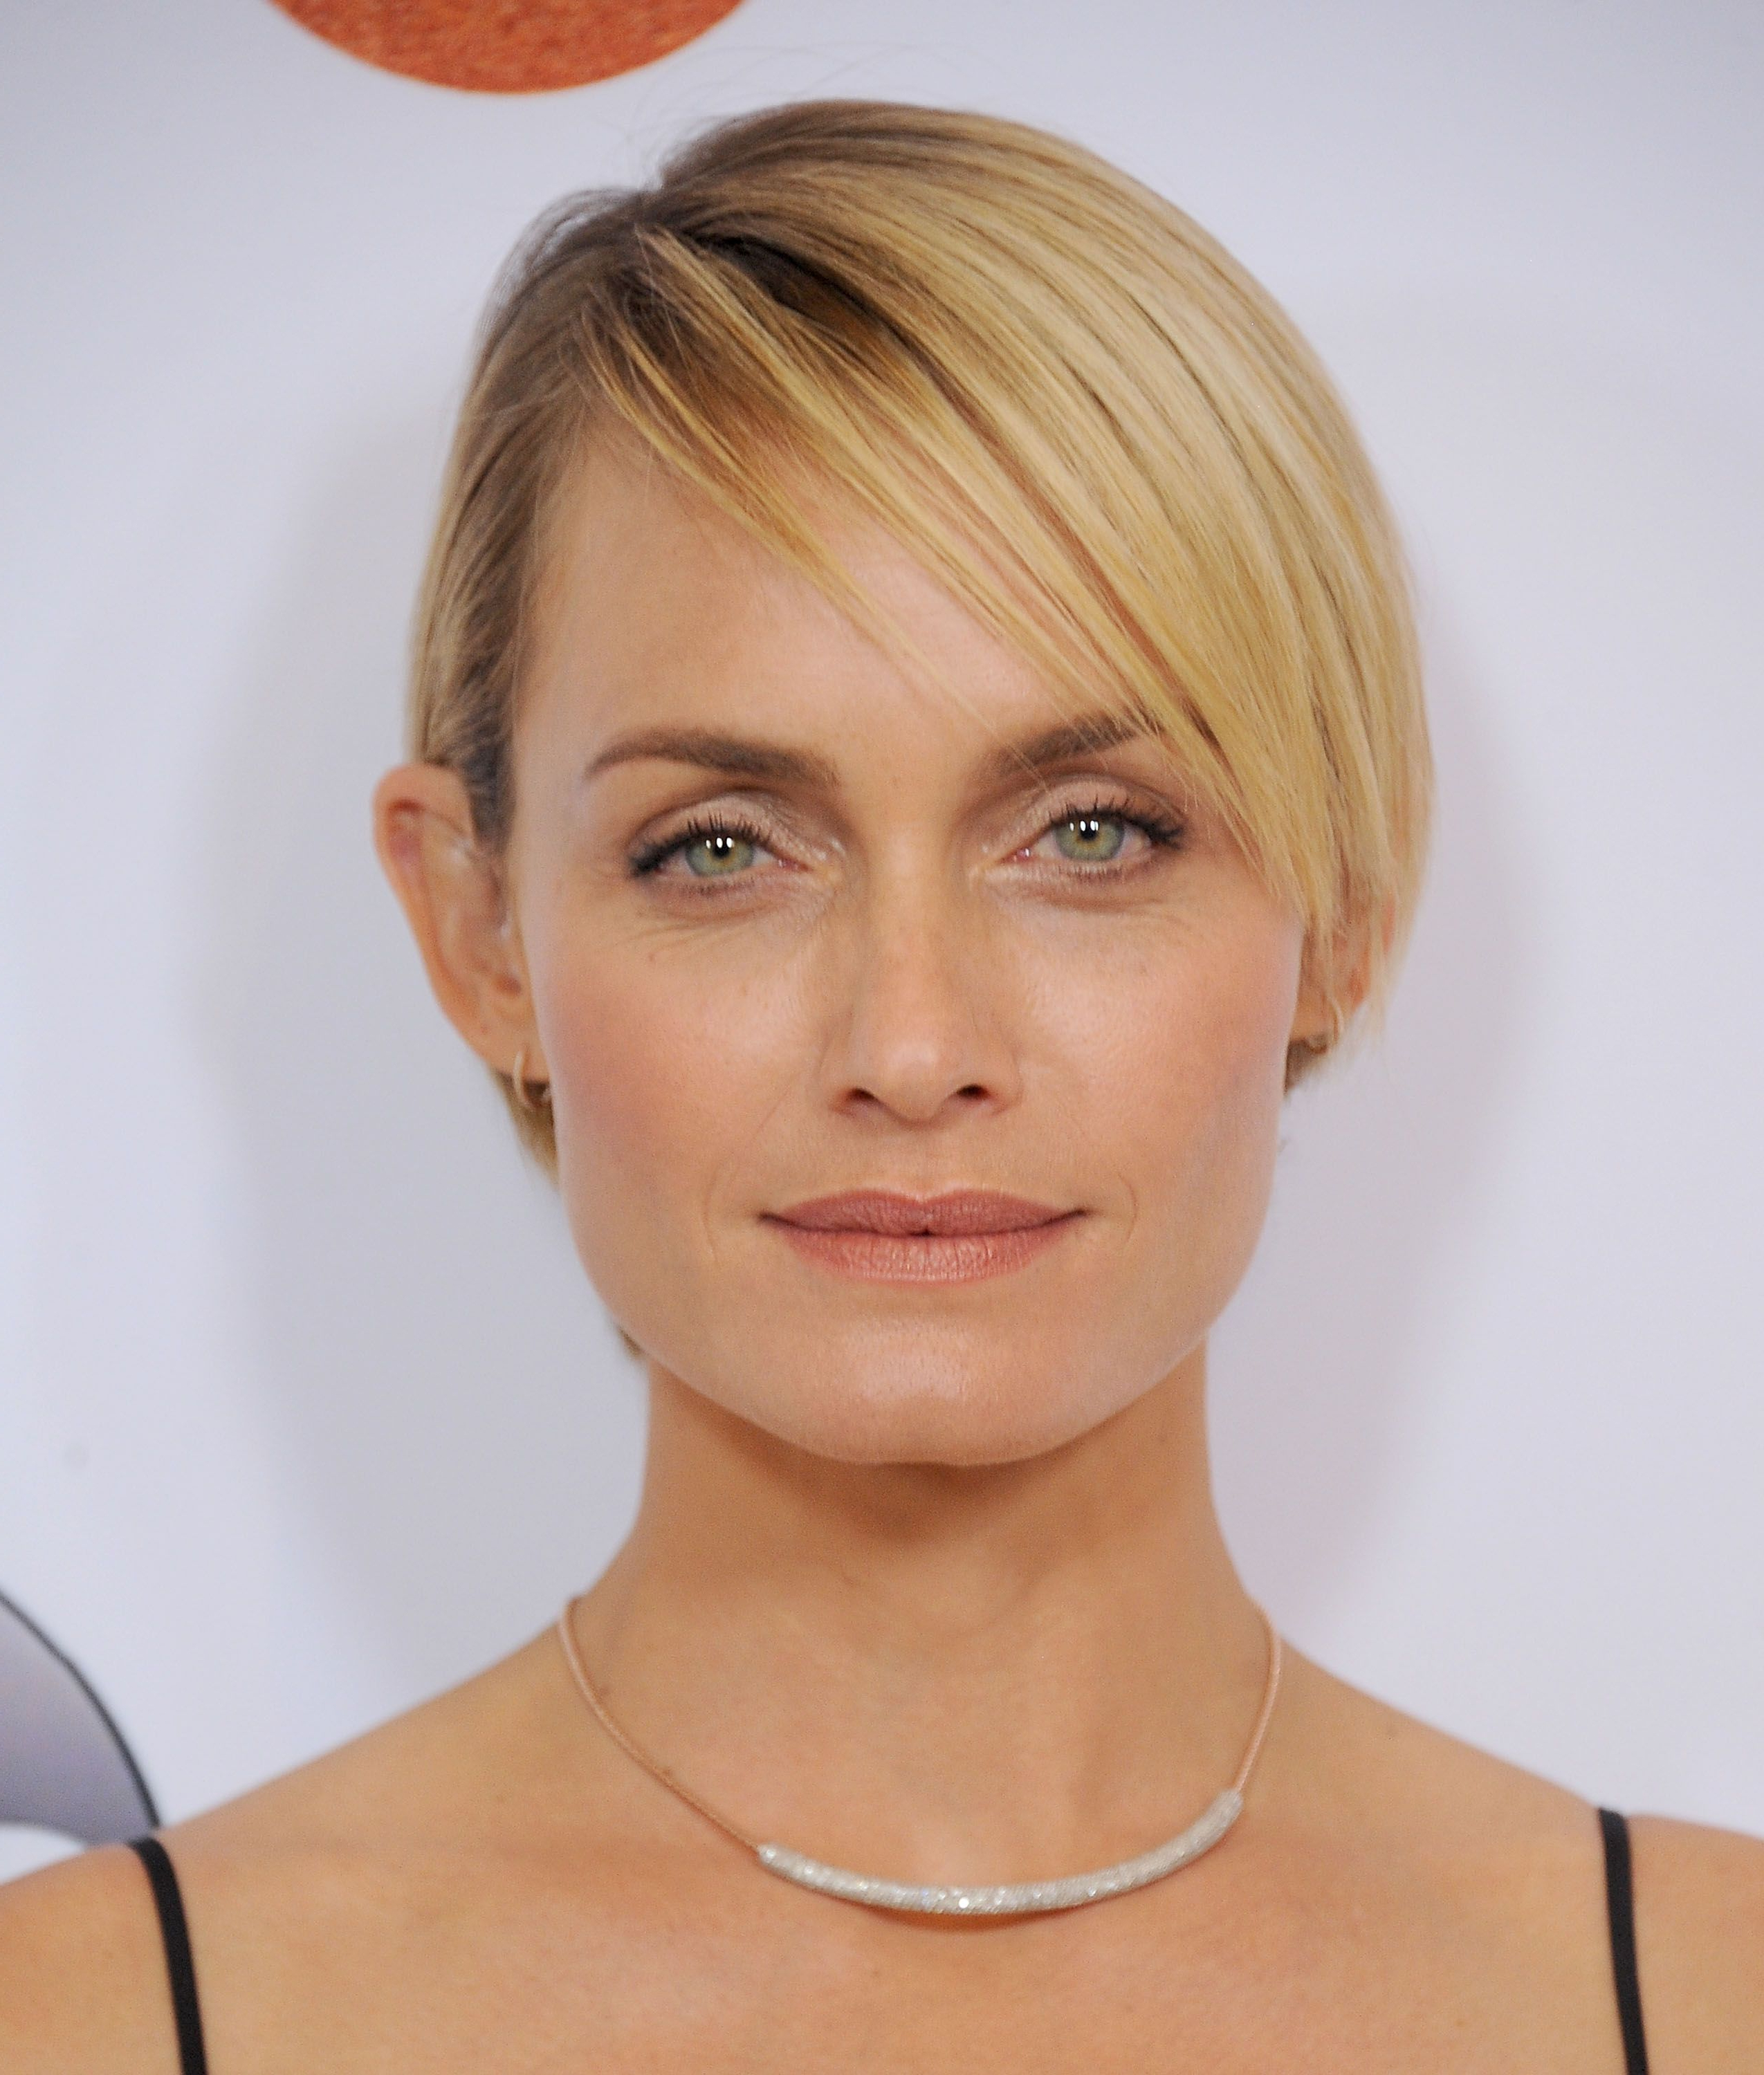 65 Best Short Hairstyles, Haircuts, And Short Hair Ideas For 2018 With Short Haircuts For 60 Year Old Woman (Gallery 14 of 25)